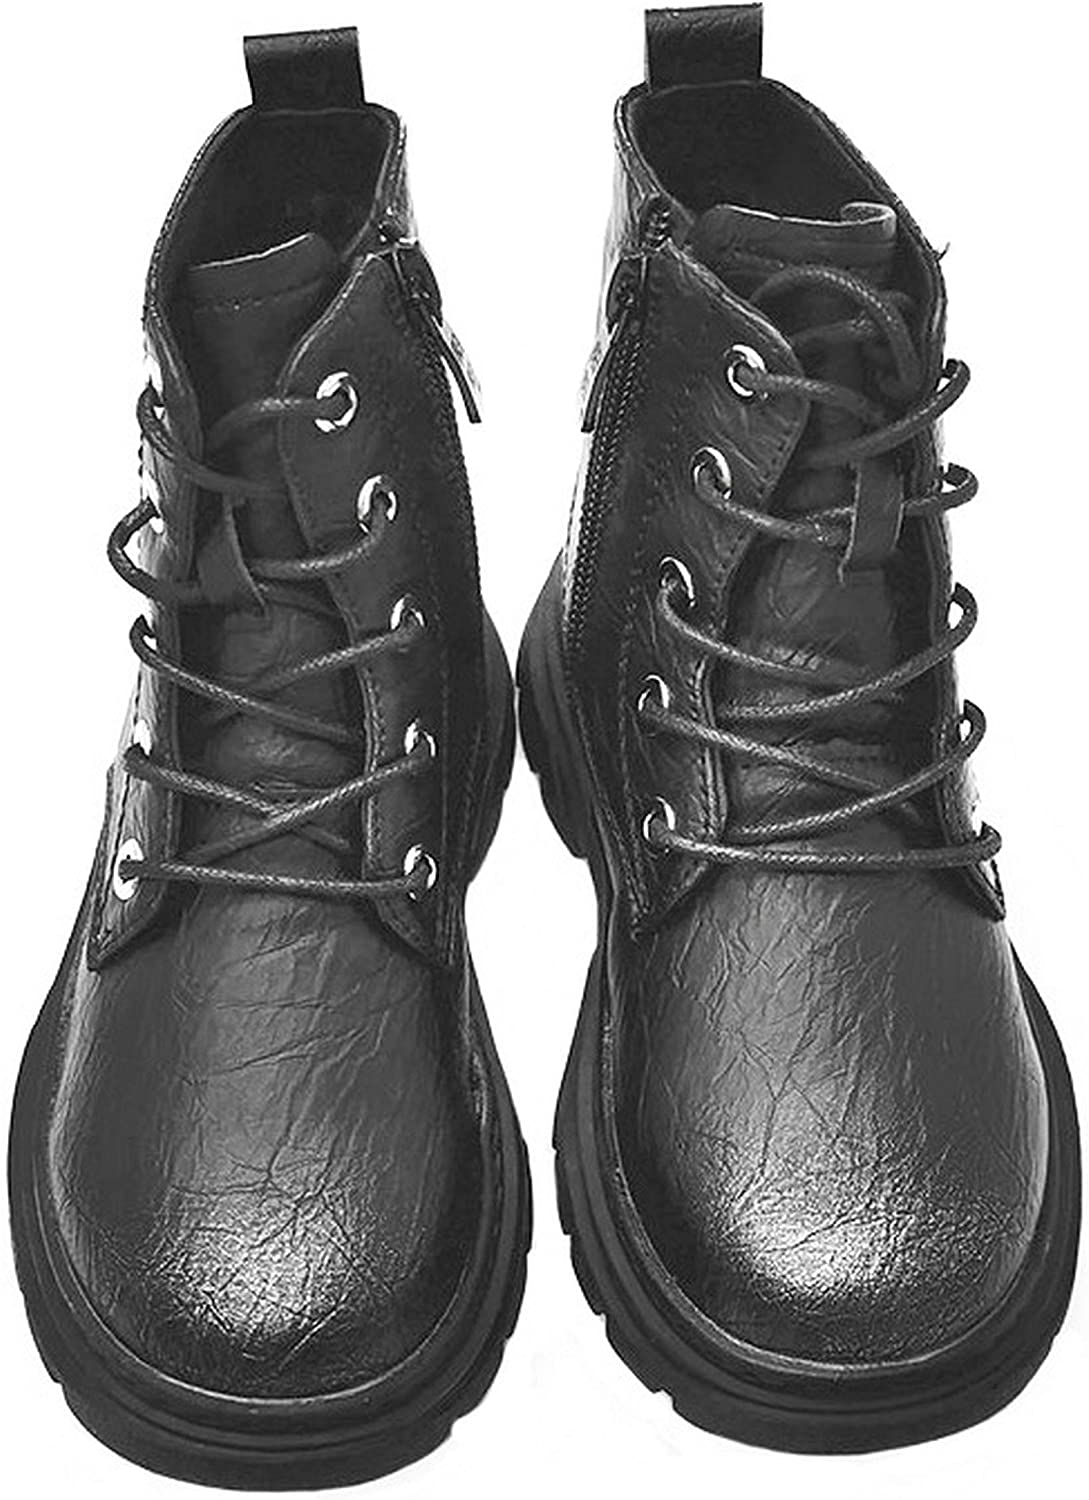 Forever Young Girls Military Ankle Boots Casual Flat Kids Shoes All Ages Size 9-3